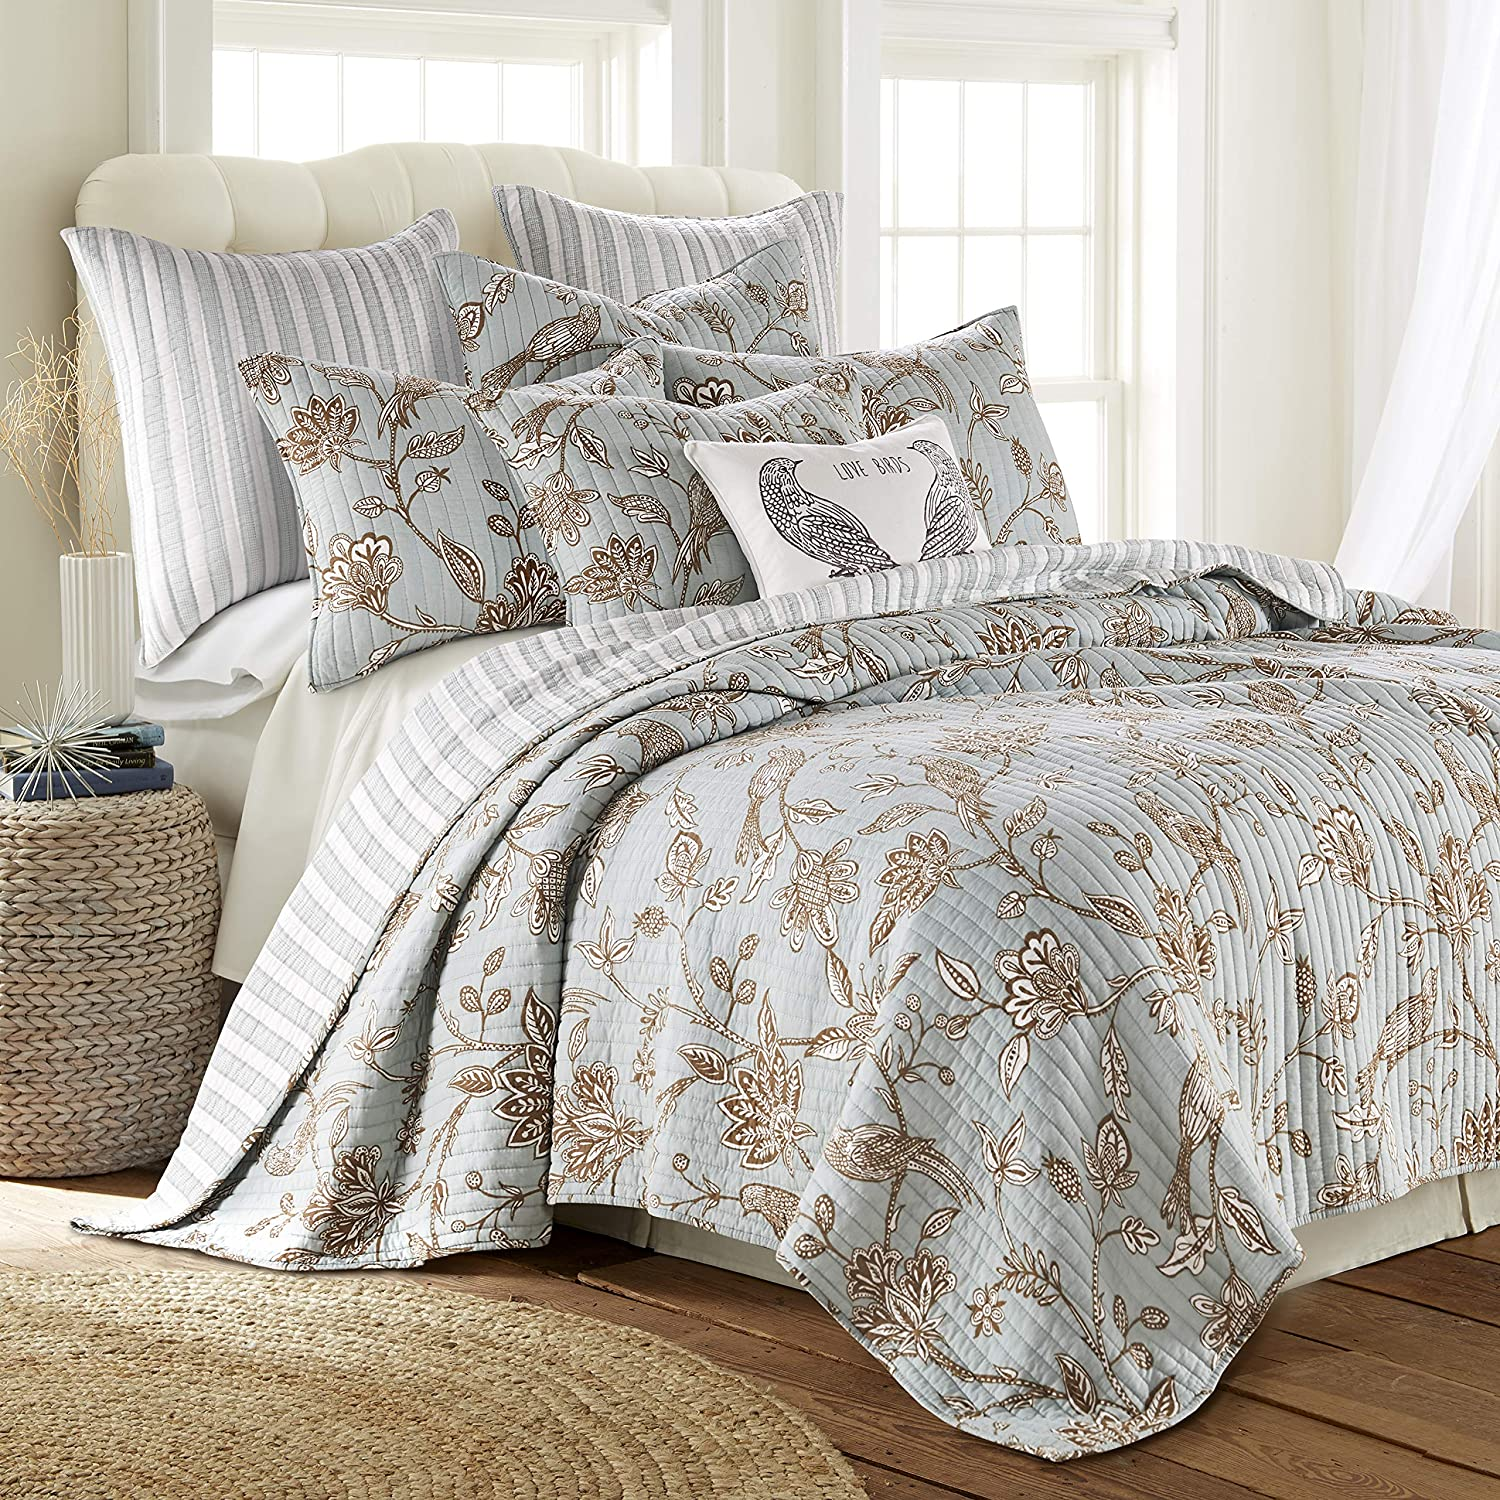 Levtex home - Max 60% OFF Tanzie Surprise price Teal Quilt King Set Pill + Two